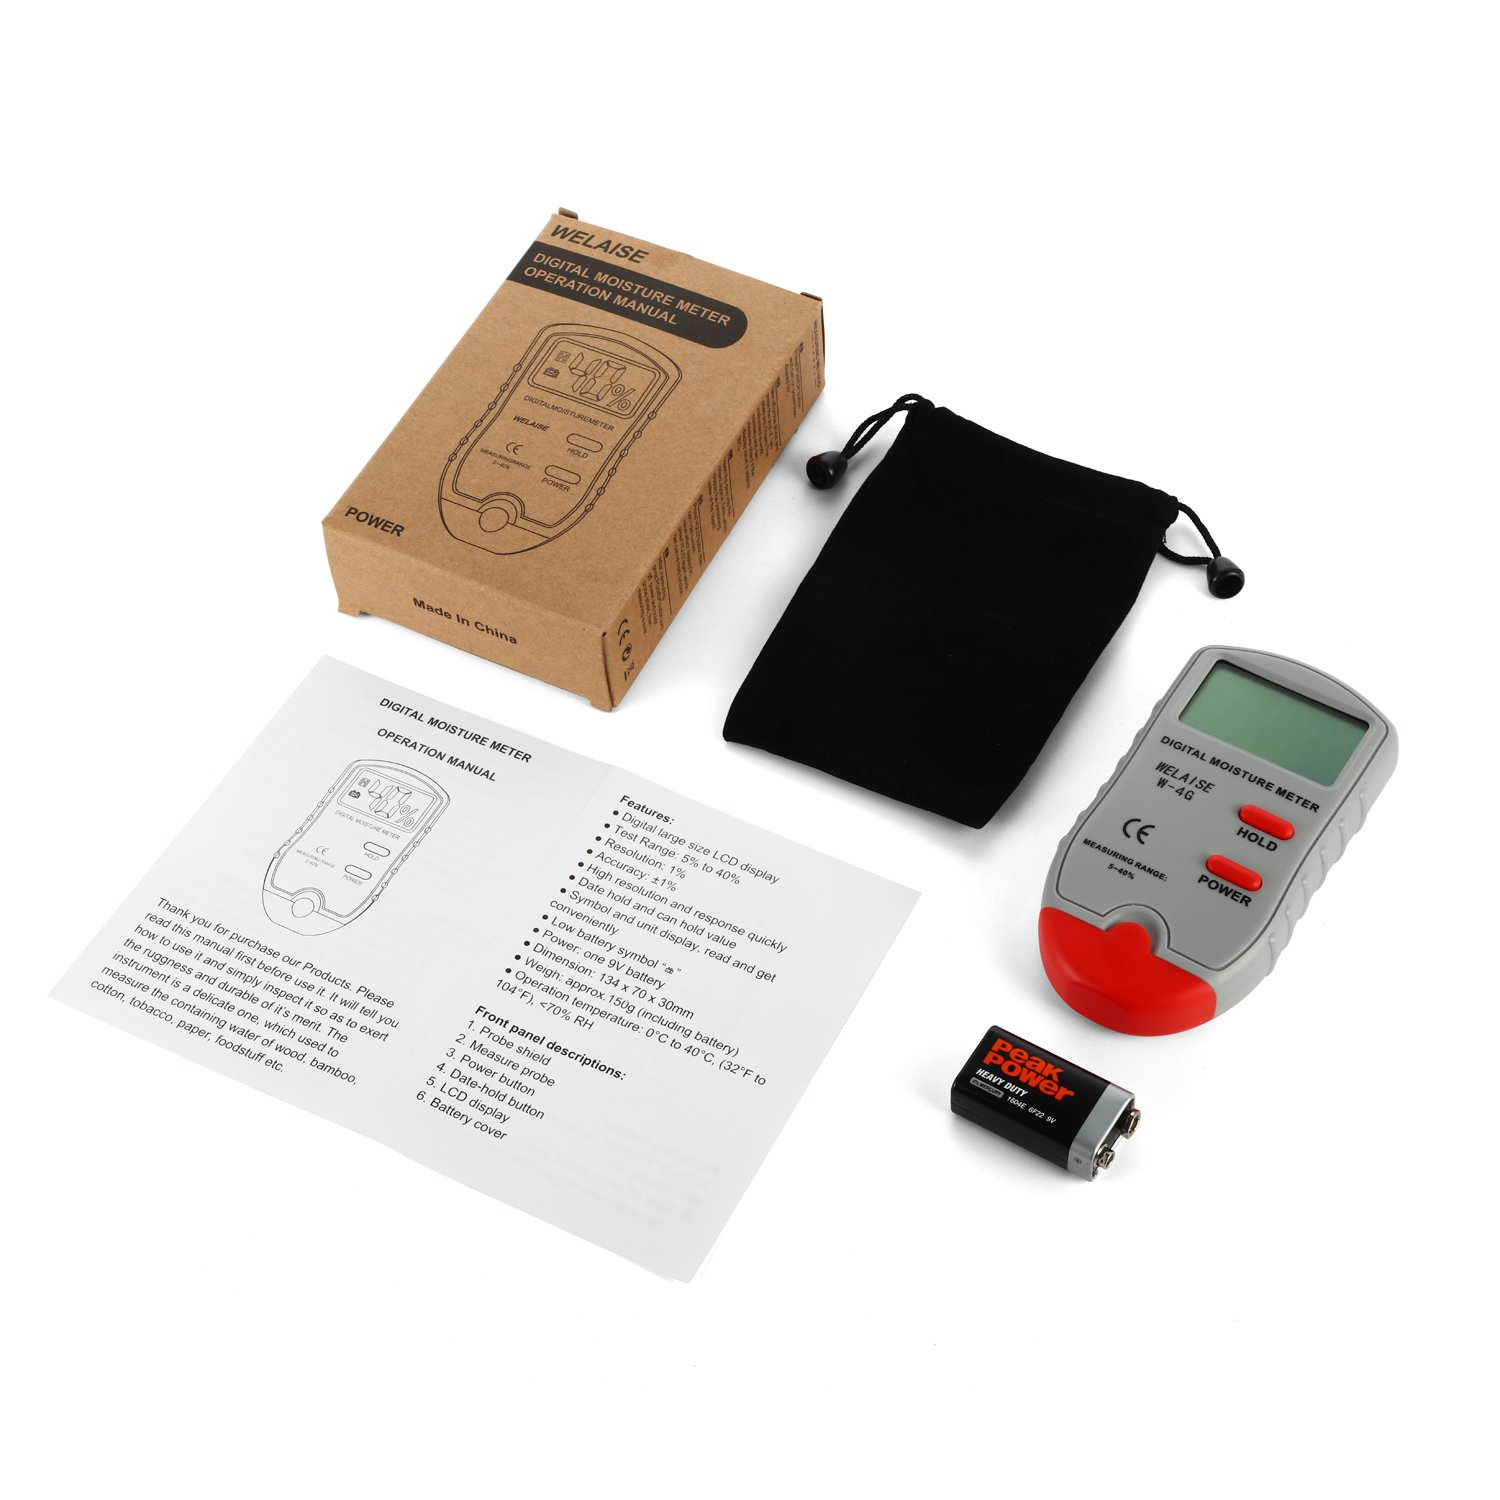 Accuracy: +//-1/% Digital Moisture Meter WELAISE Wood Water Moisture Tester with HD Digital LCD Display,4 Spare Sensor Pins for Different Materials Range 5/% 40/%